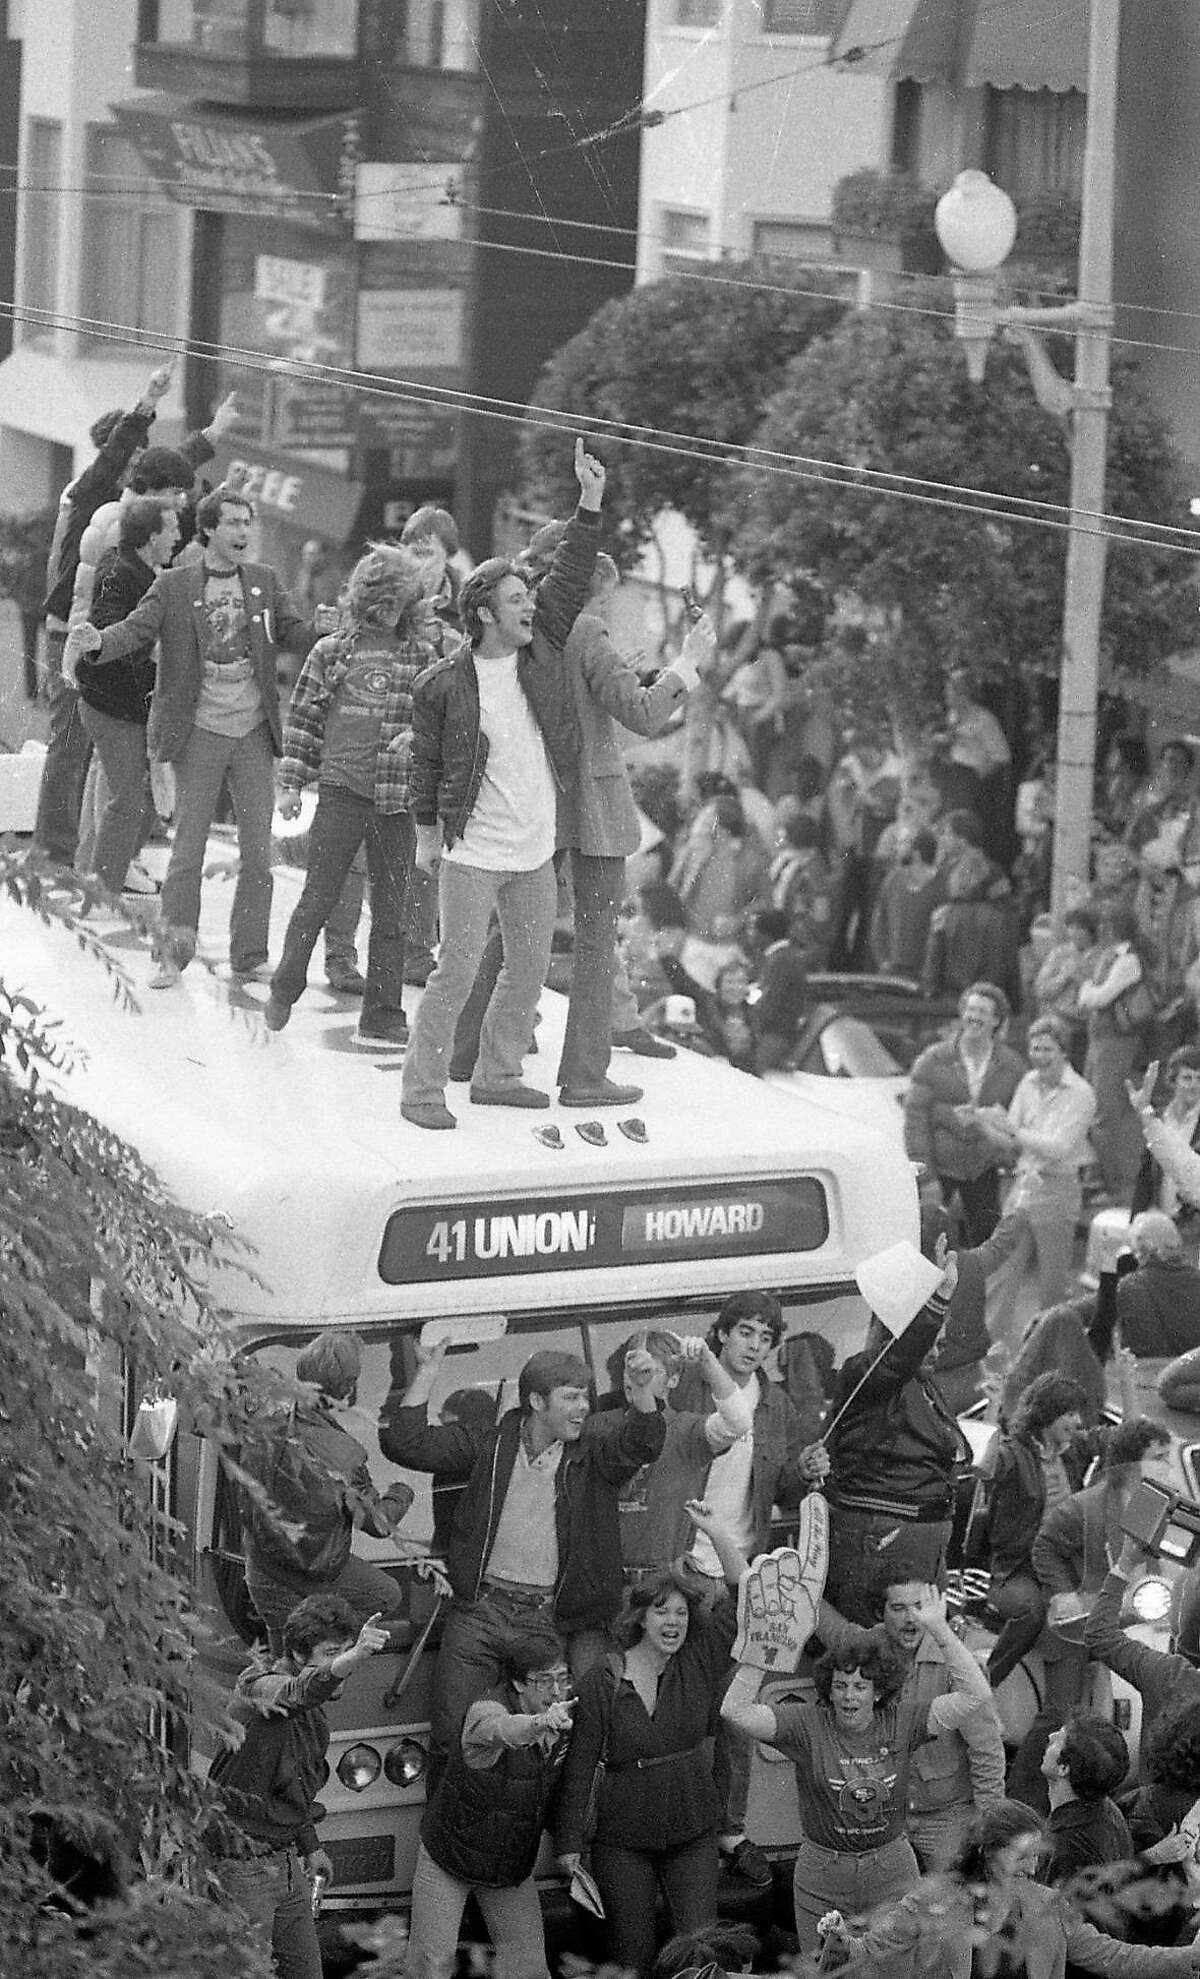 Fans celebrate the 49ers Super Bowl XVI win by climbing on top of a Muni bus on Union Street. Jan. 24, 1982.